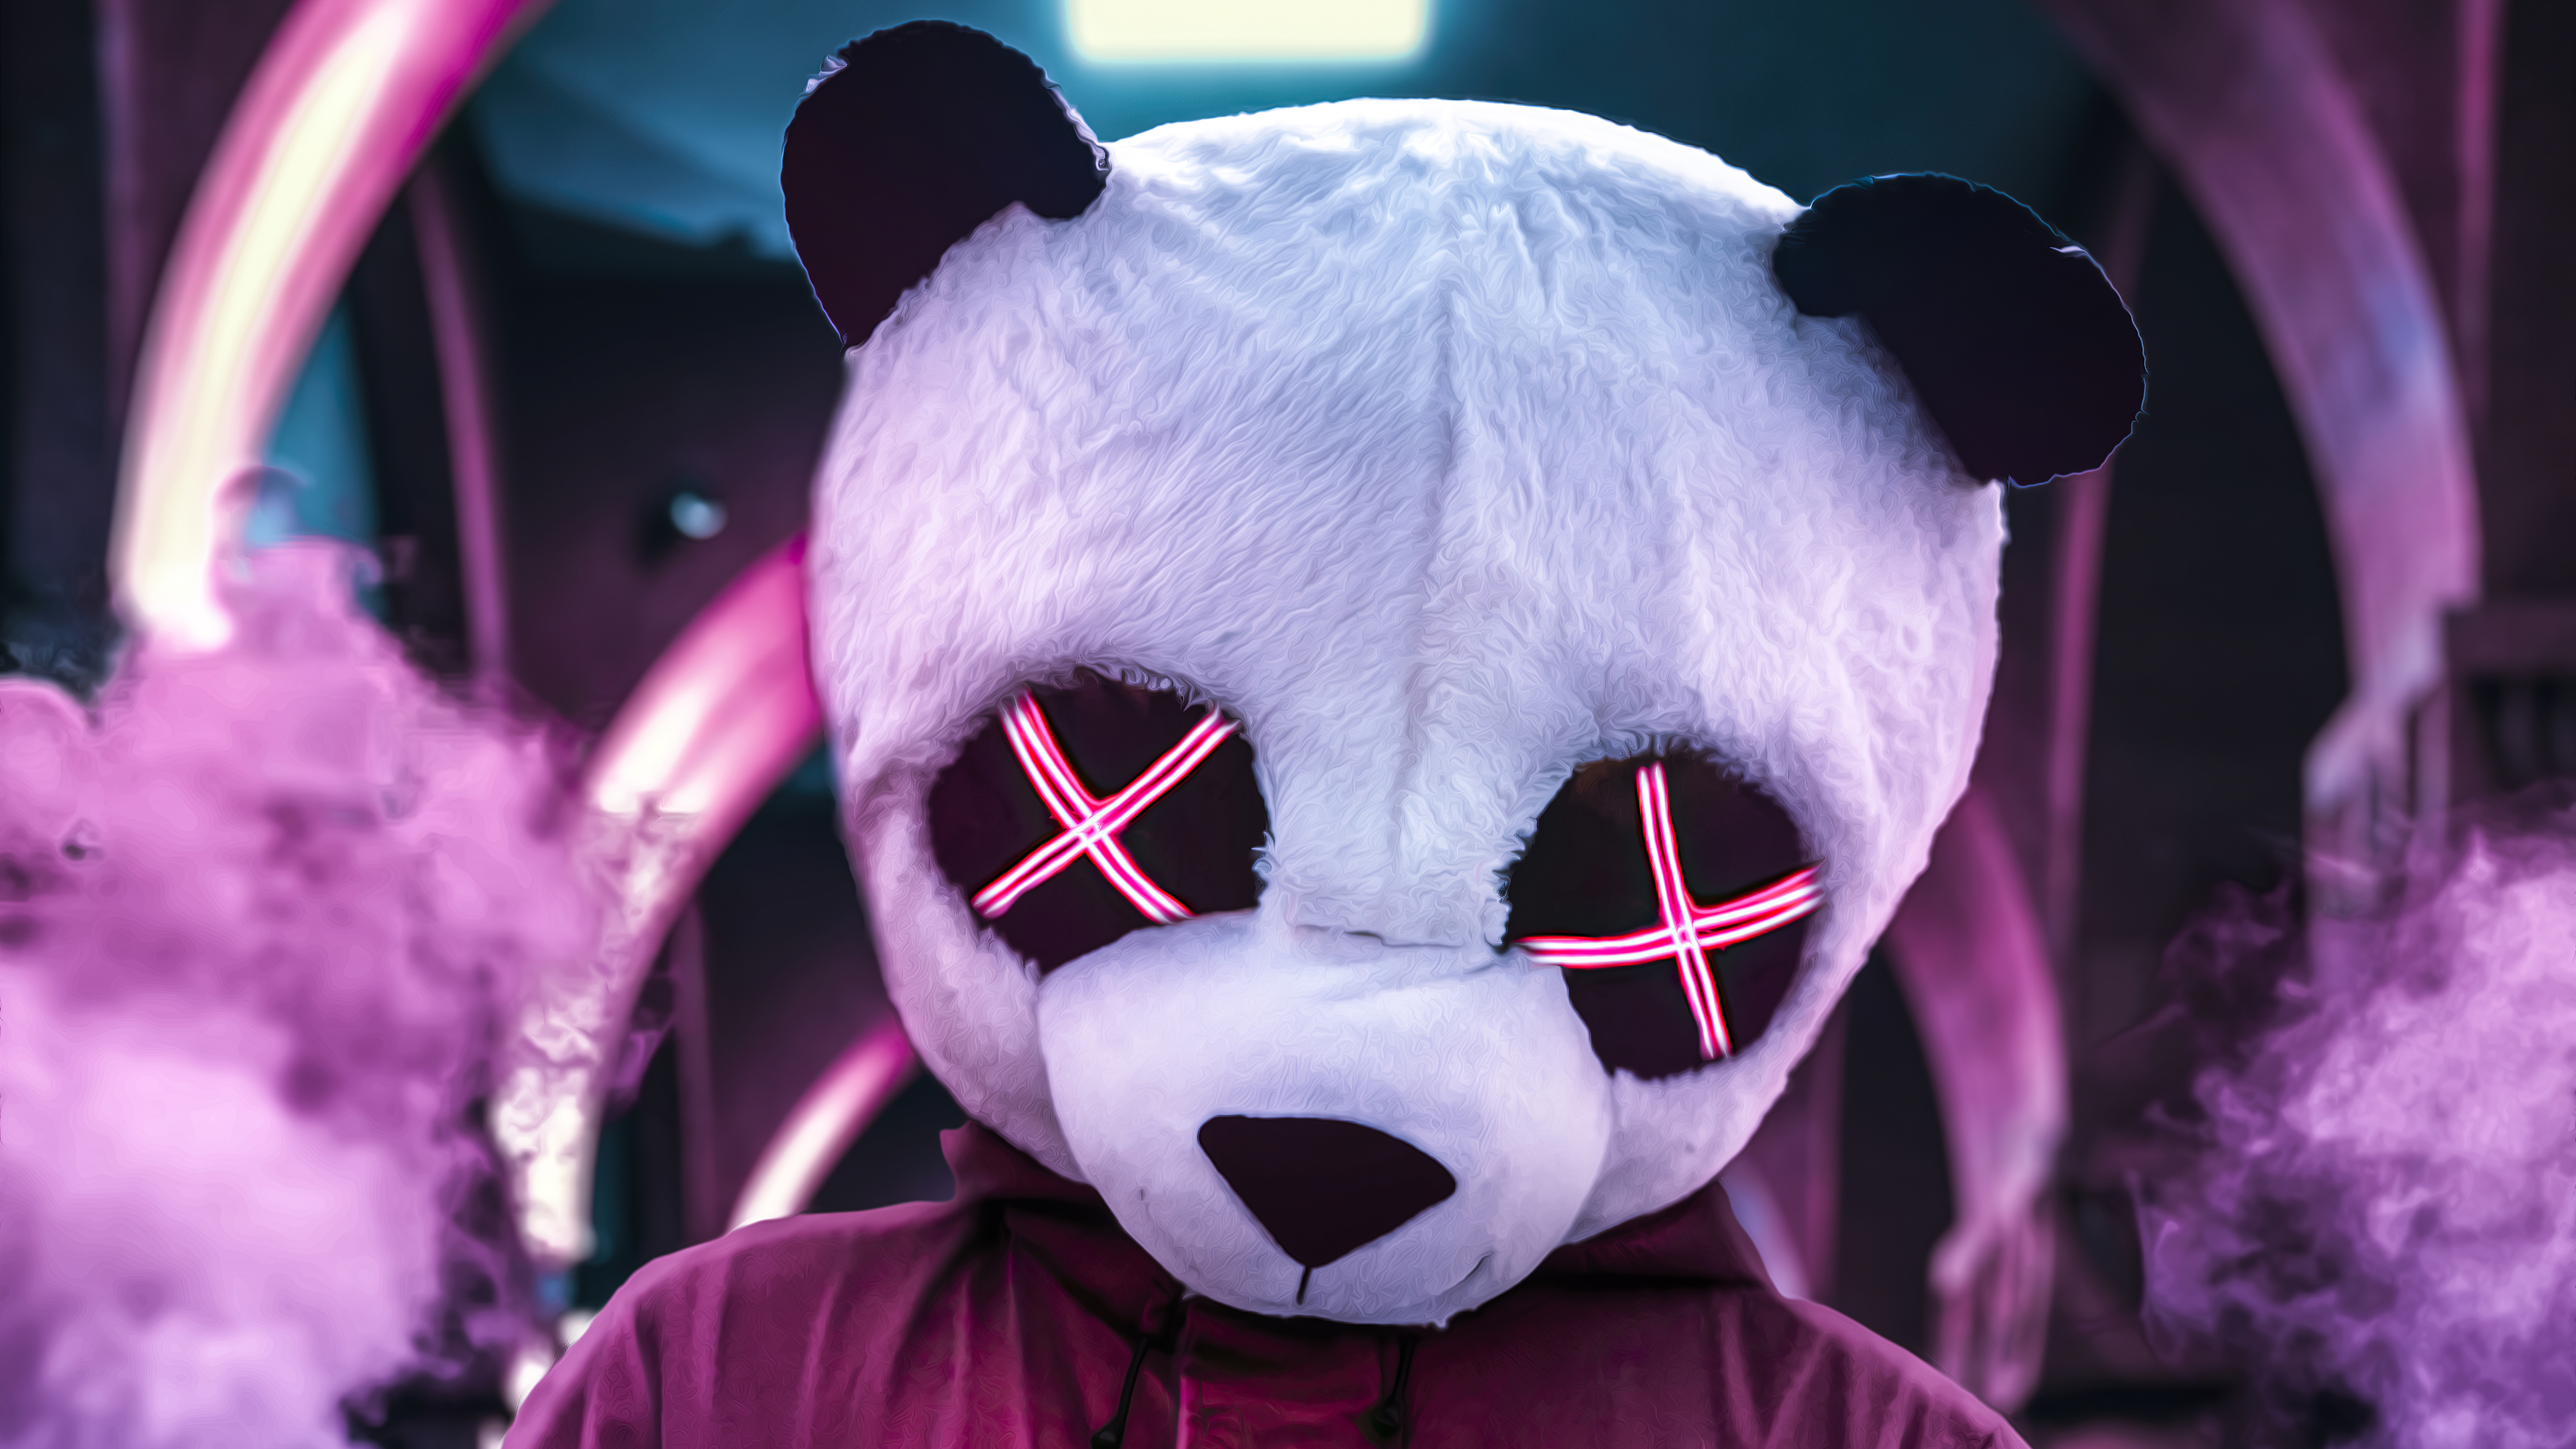 Panda Neon Eyes 4k Hd Artist 4k Wallpapers Images Backgrounds Photos And Pictures